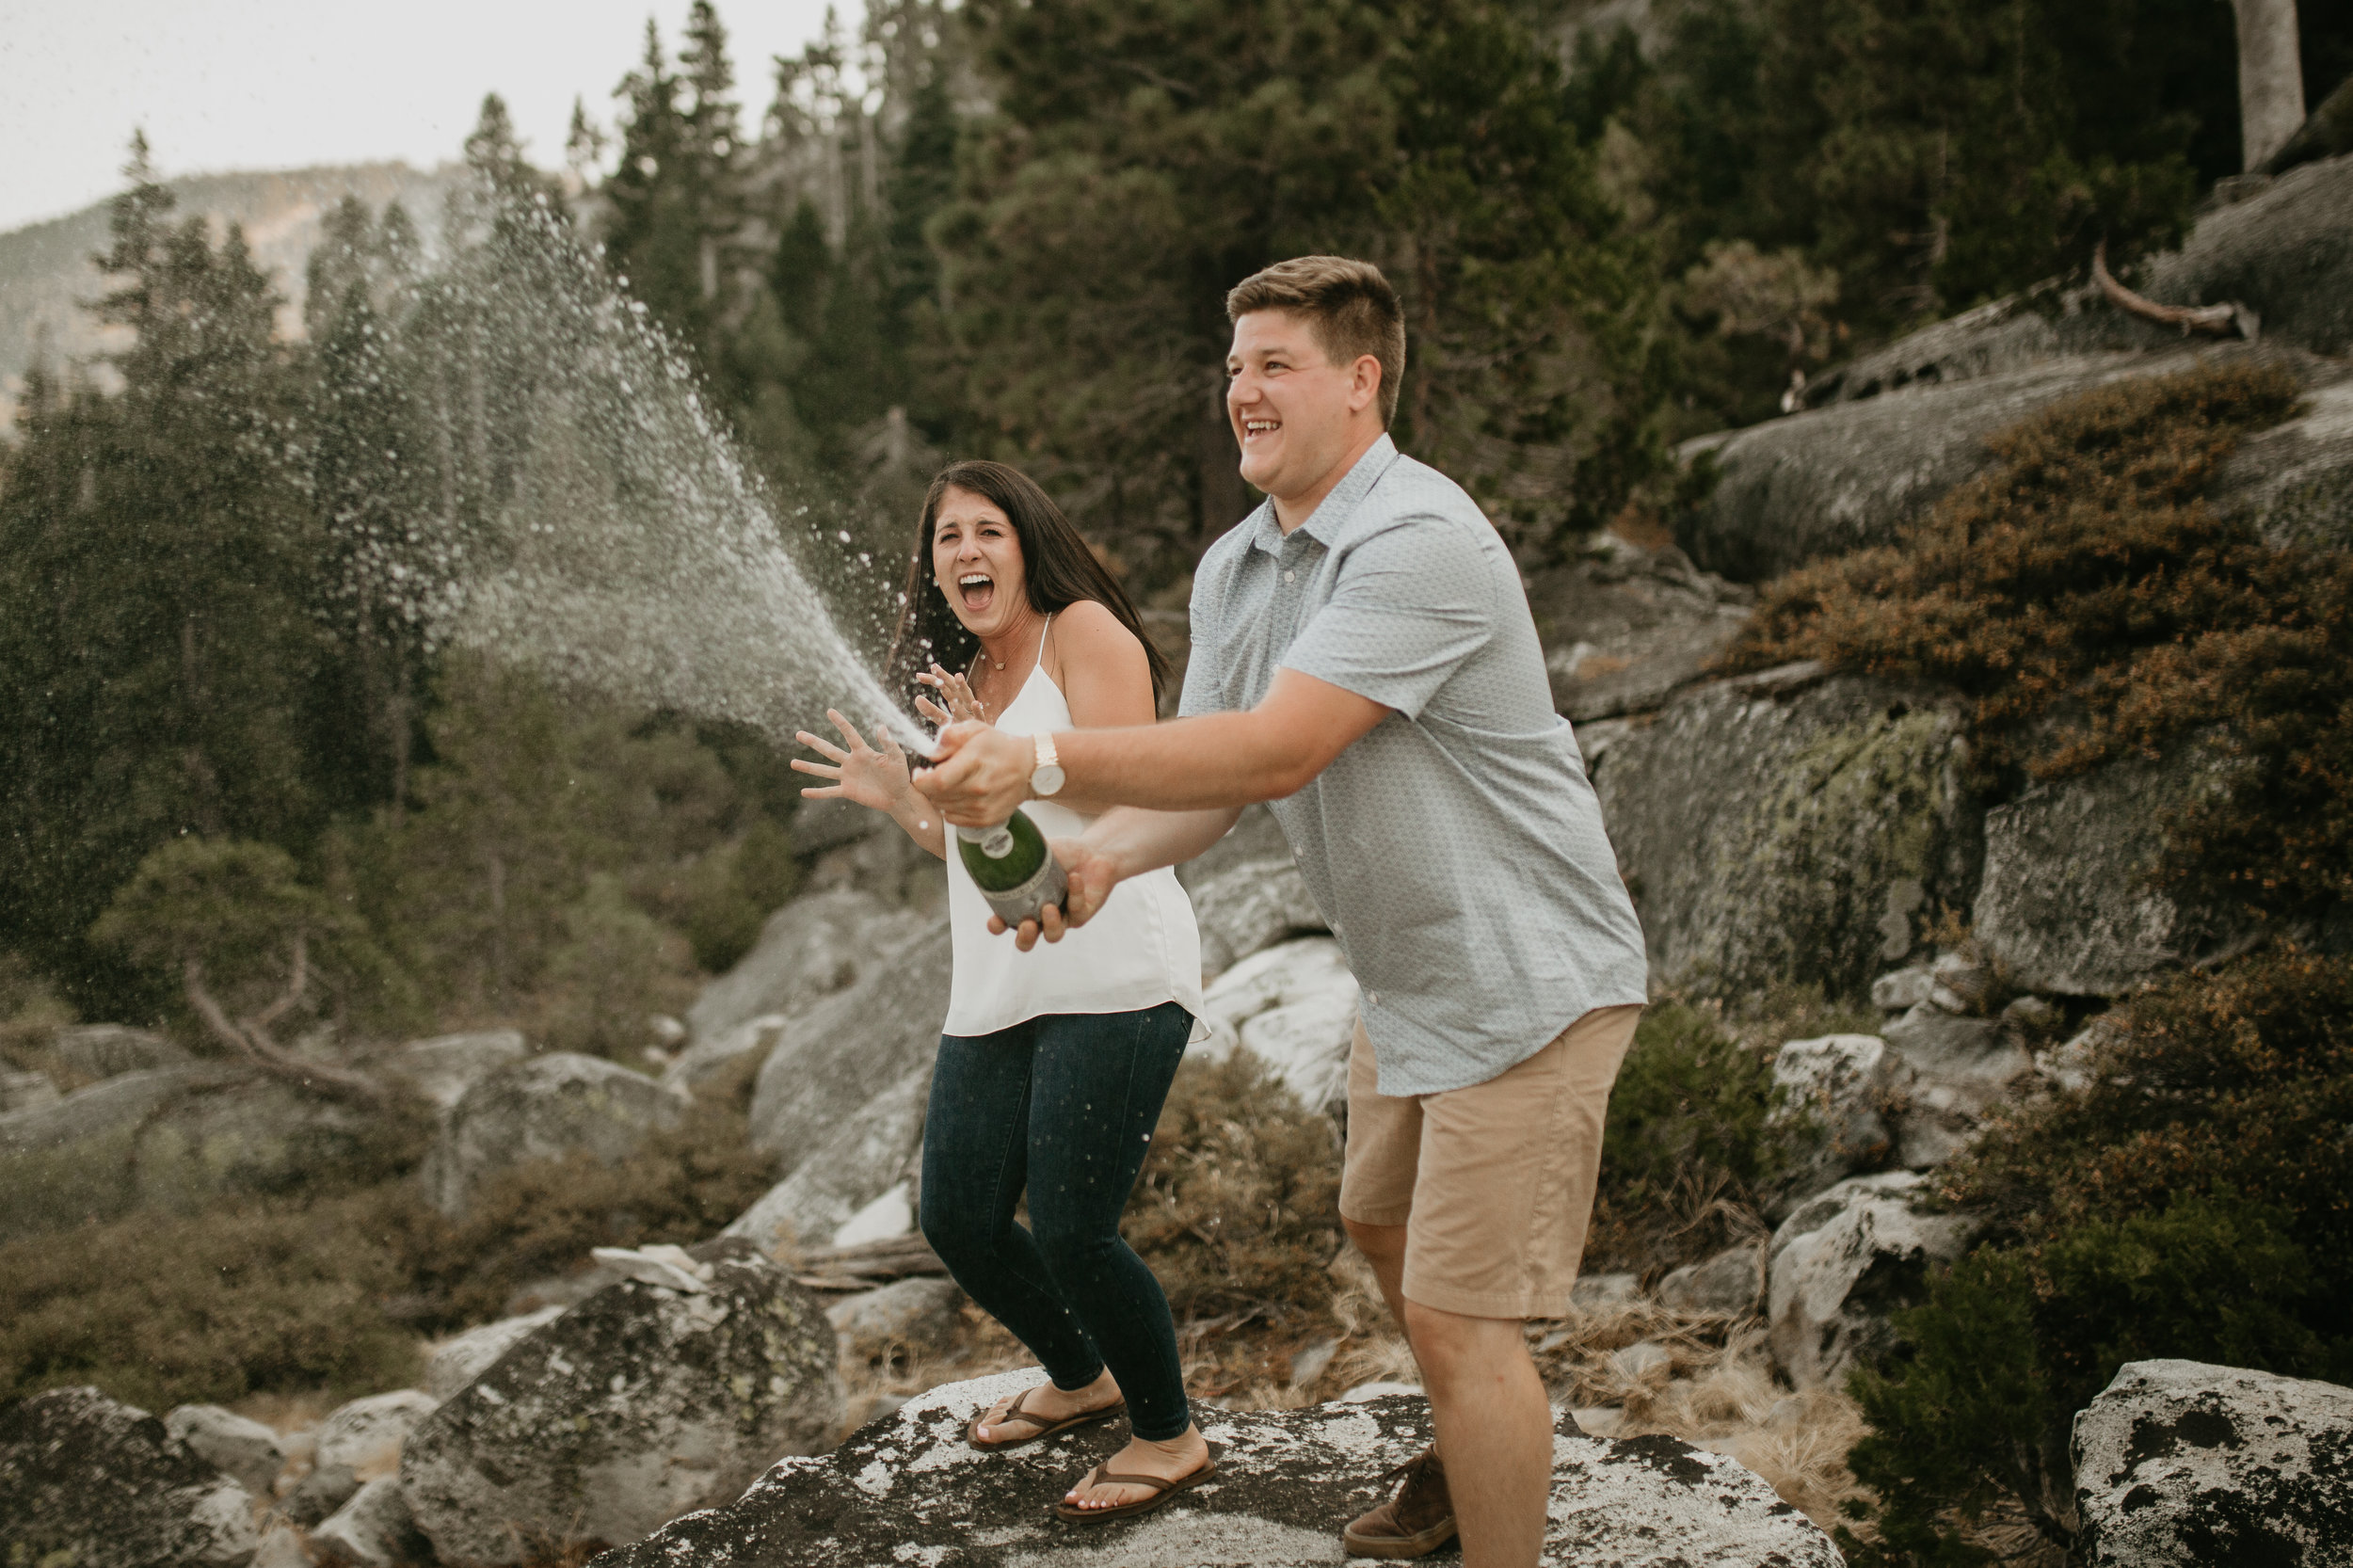 nicole-daacke-photography-adventurous-elopement-traveling-destination-wedding-photographer-national-park-engagement-sessions-7624.jpg